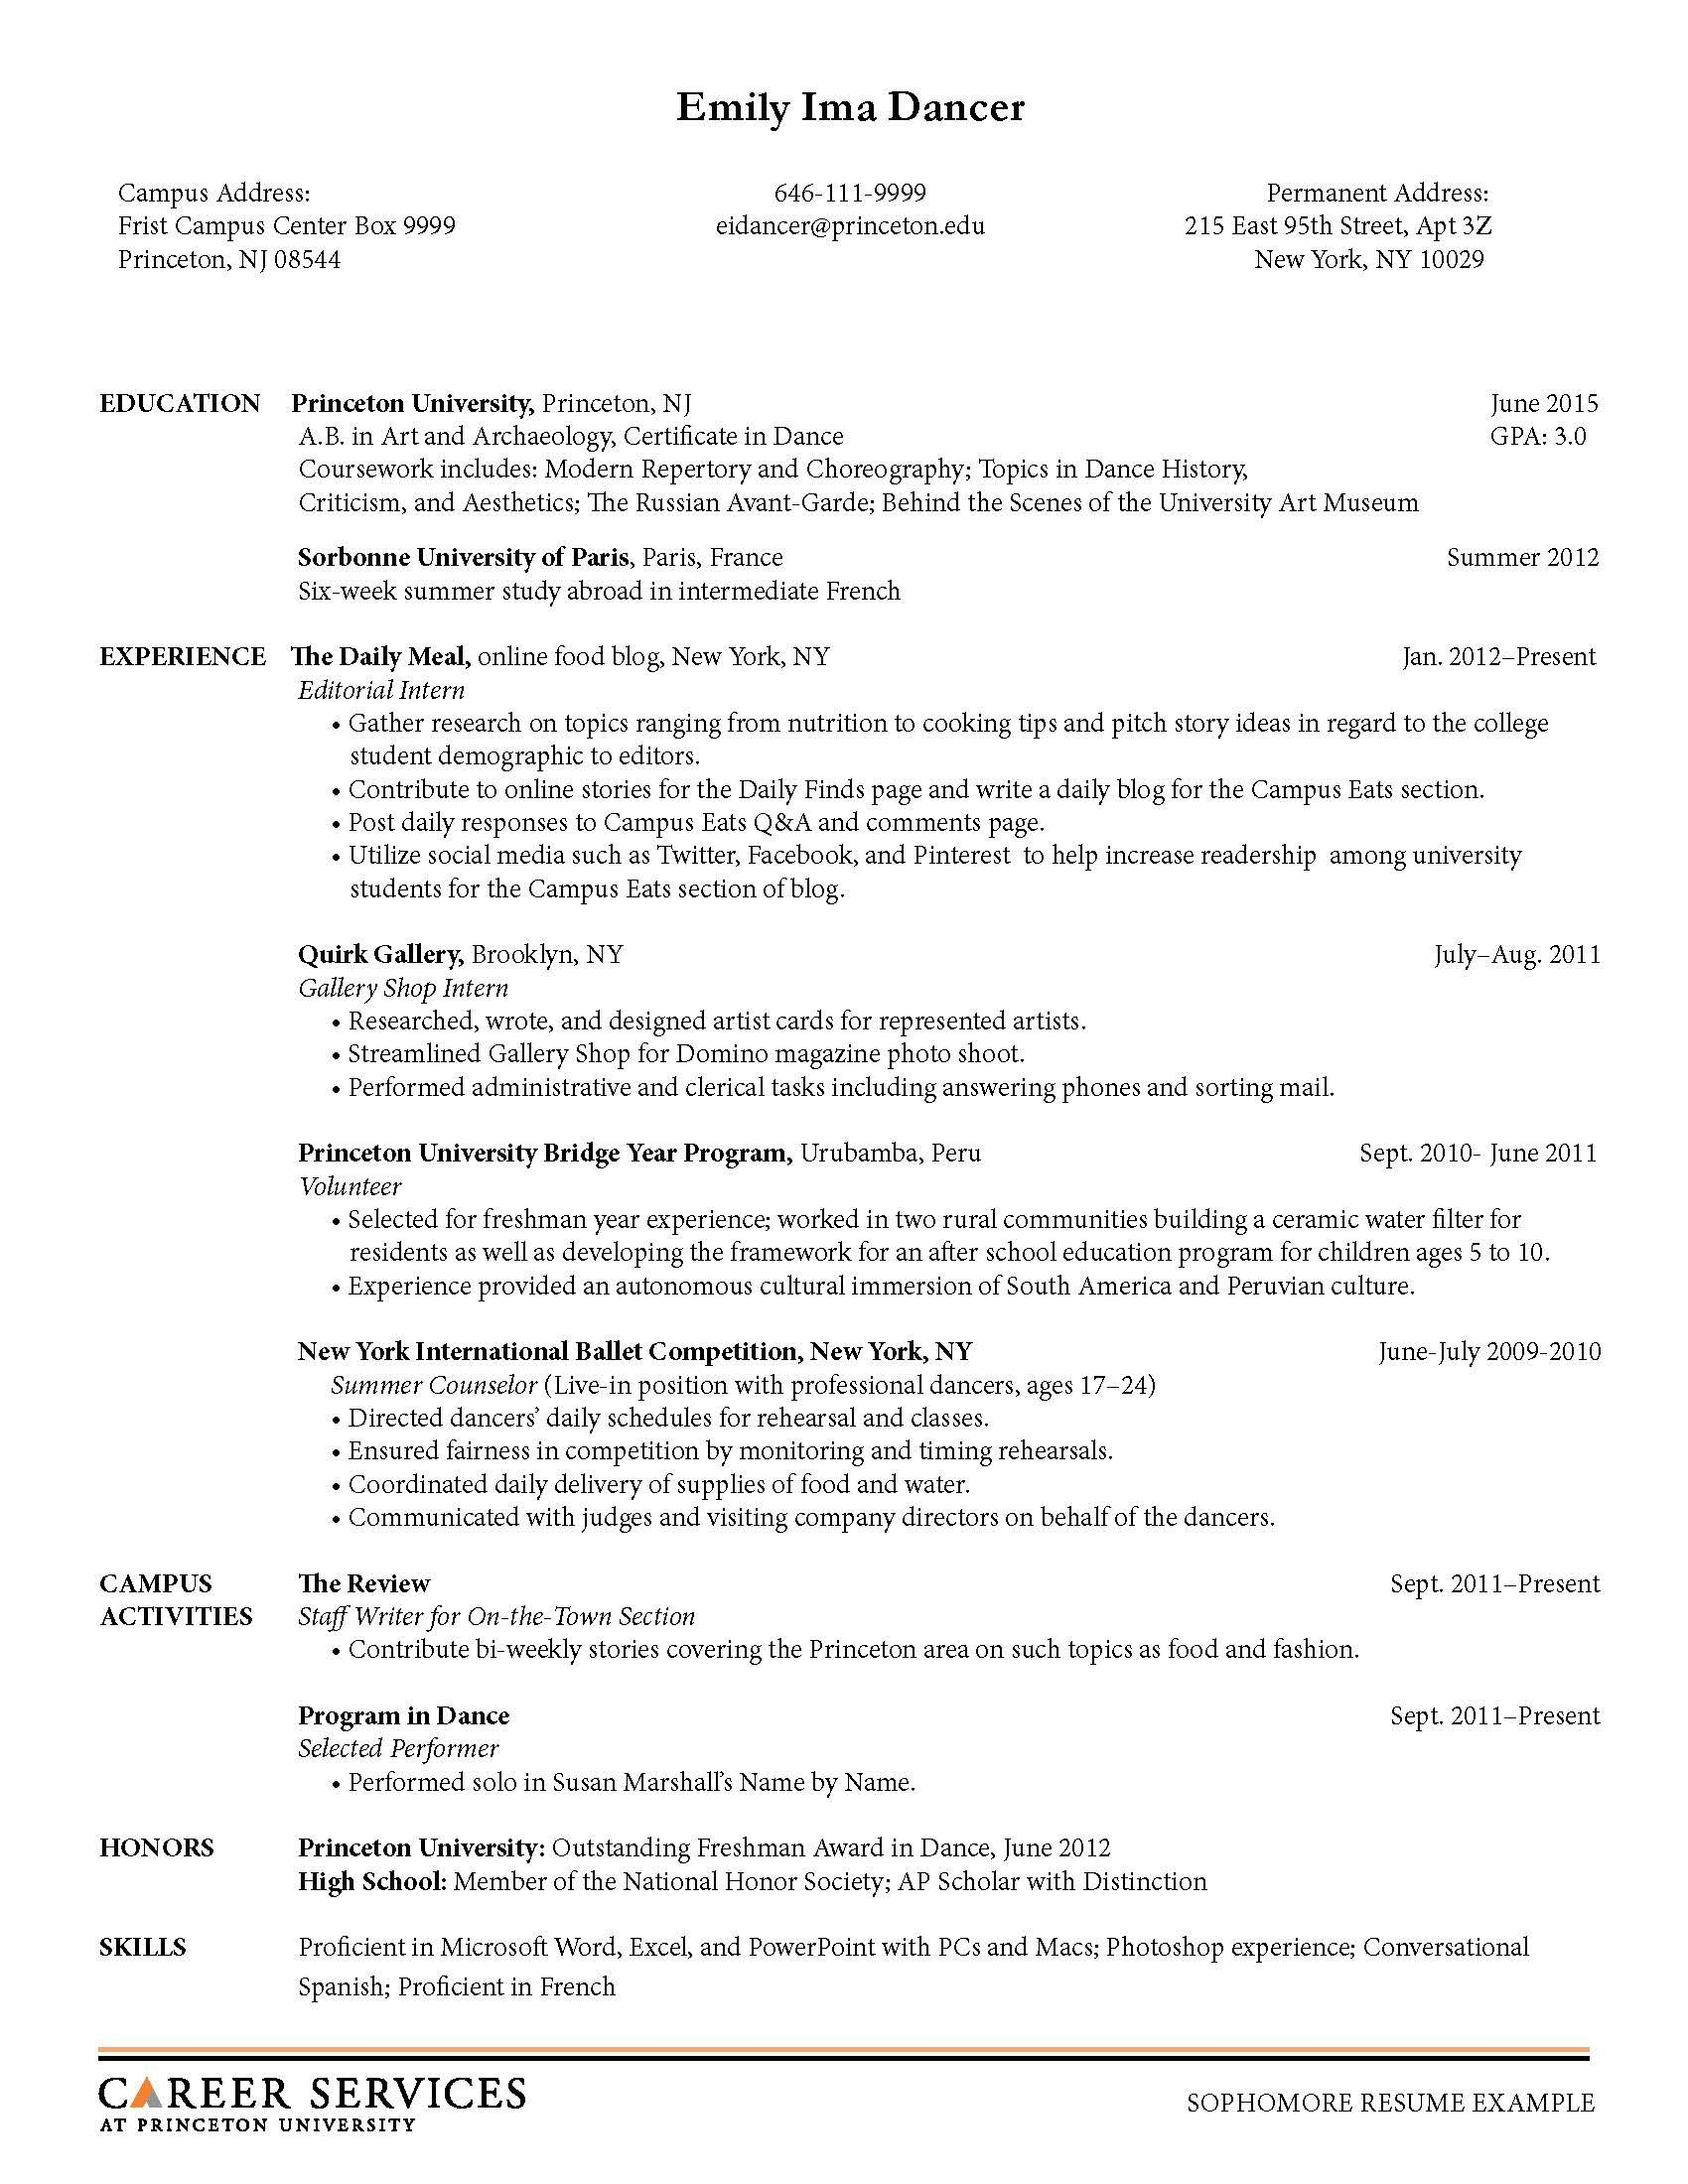 Picnictoimpeachus  Seductive Sample Resume Resume And Career On Pinterest With Foxy Resume Cover Letter Sample Free Besides Resume Letter Format Furthermore Aerospace Engineer Resume With Breathtaking Financial Analyst Resume Examples Also Mis Resume In Addition How To Make Your Resume Better And Anesthesiologist Resume As Well As Best Sales Resume Examples Additionally Receptionist Job Duties Resume From Pinterestcom With Picnictoimpeachus  Foxy Sample Resume Resume And Career On Pinterest With Breathtaking Resume Cover Letter Sample Free Besides Resume Letter Format Furthermore Aerospace Engineer Resume And Seductive Financial Analyst Resume Examples Also Mis Resume In Addition How To Make Your Resume Better From Pinterestcom